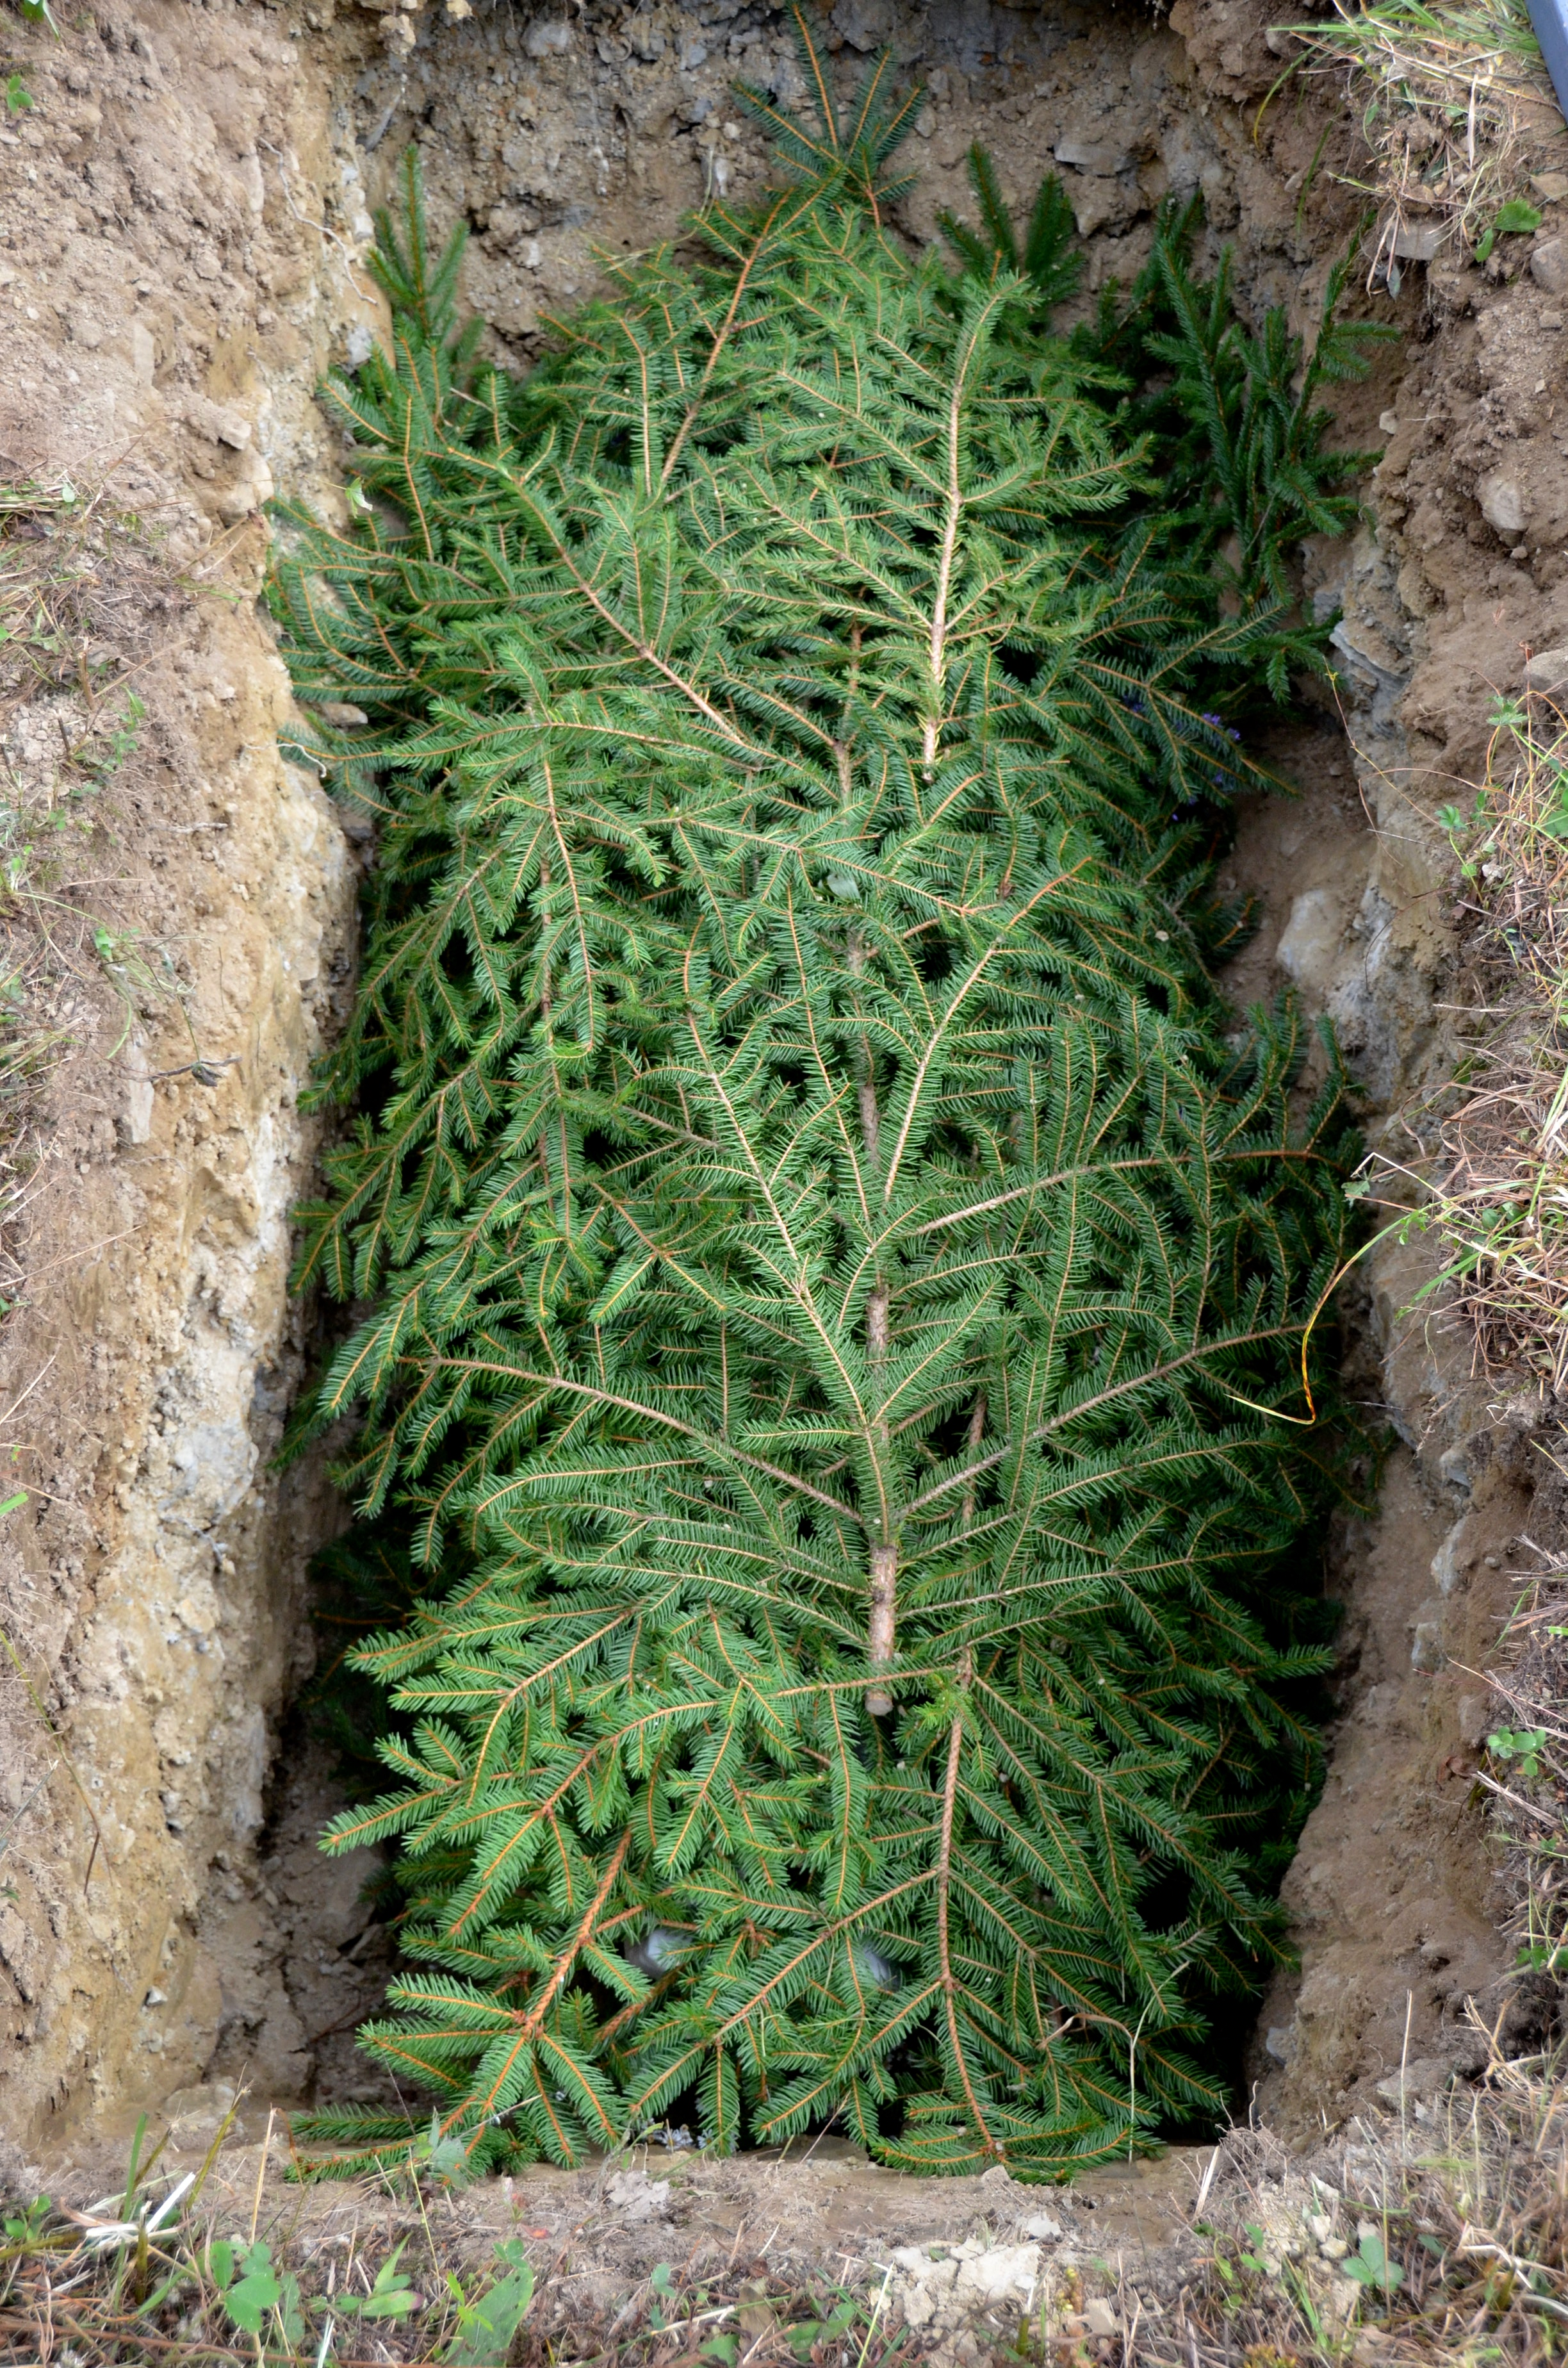 Evergreen boughs are often placed in the grave on top of the body prior to shoveling.